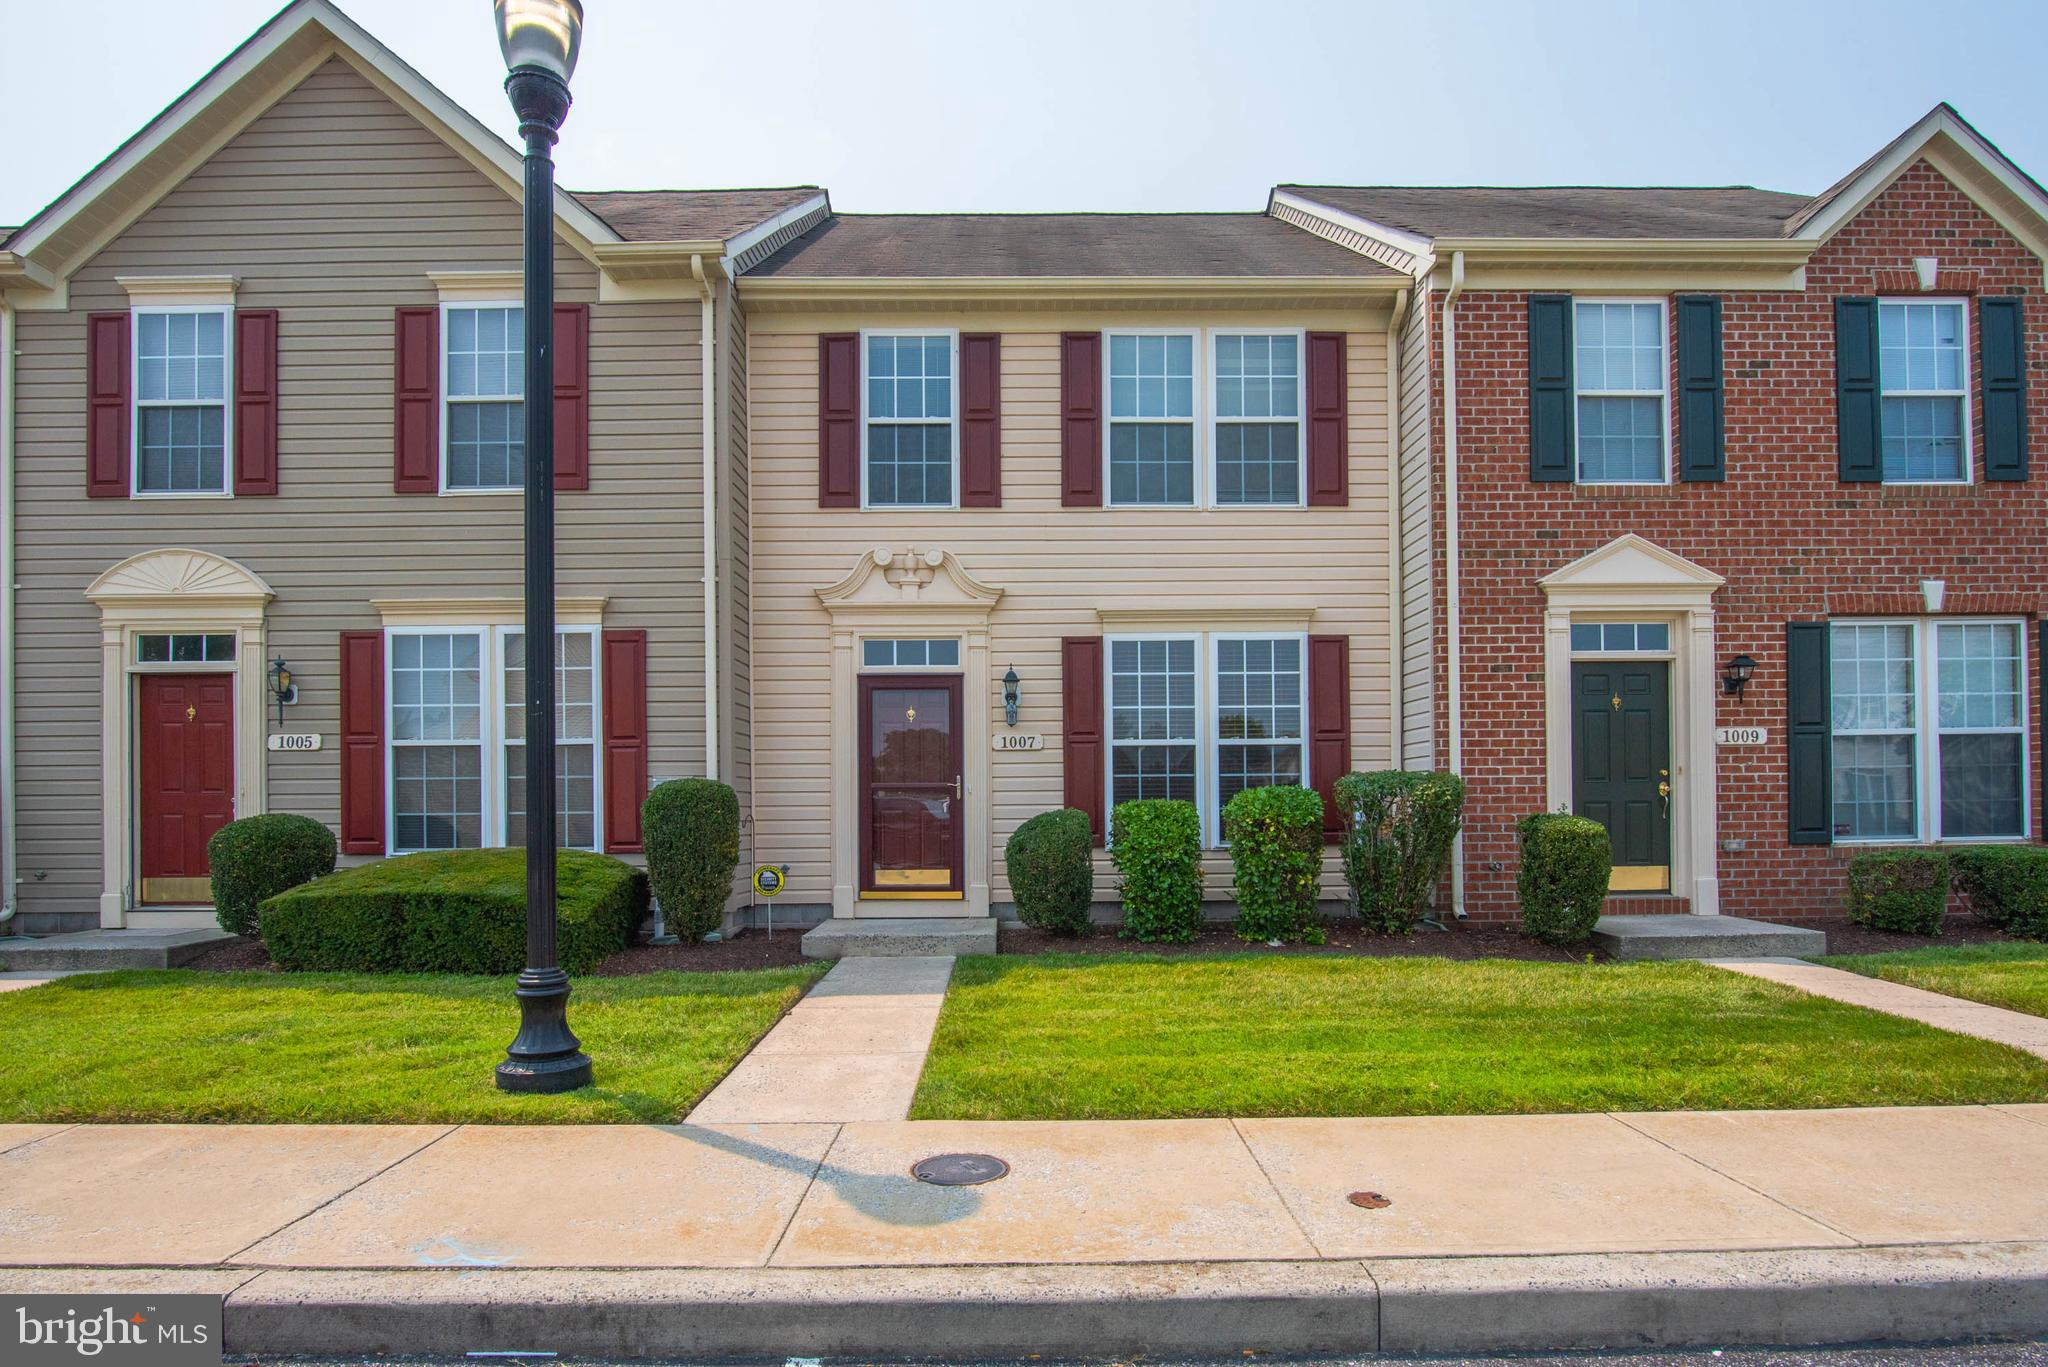 Enjoy easy living in this low maintenance townhome on the east side of Salisbury. This home is move